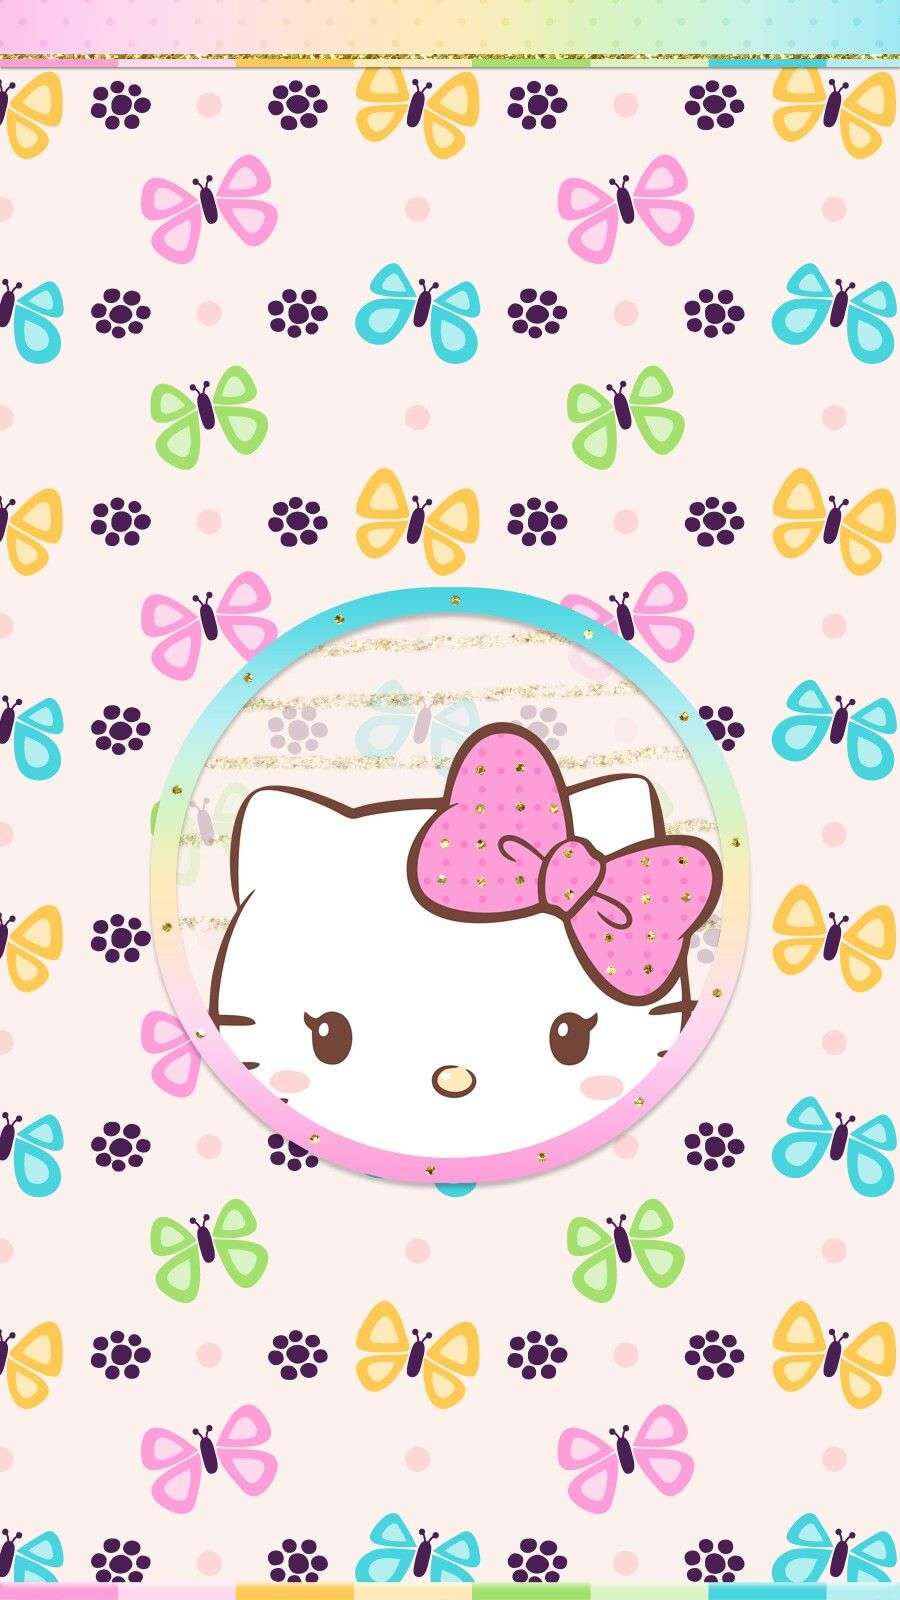 Spring Butterfly Wallpaper Android Iphone Cute Hello Kitty Hello Kitty Wallpaper Hello Kitty Backgrounds Kitty Wallpaper